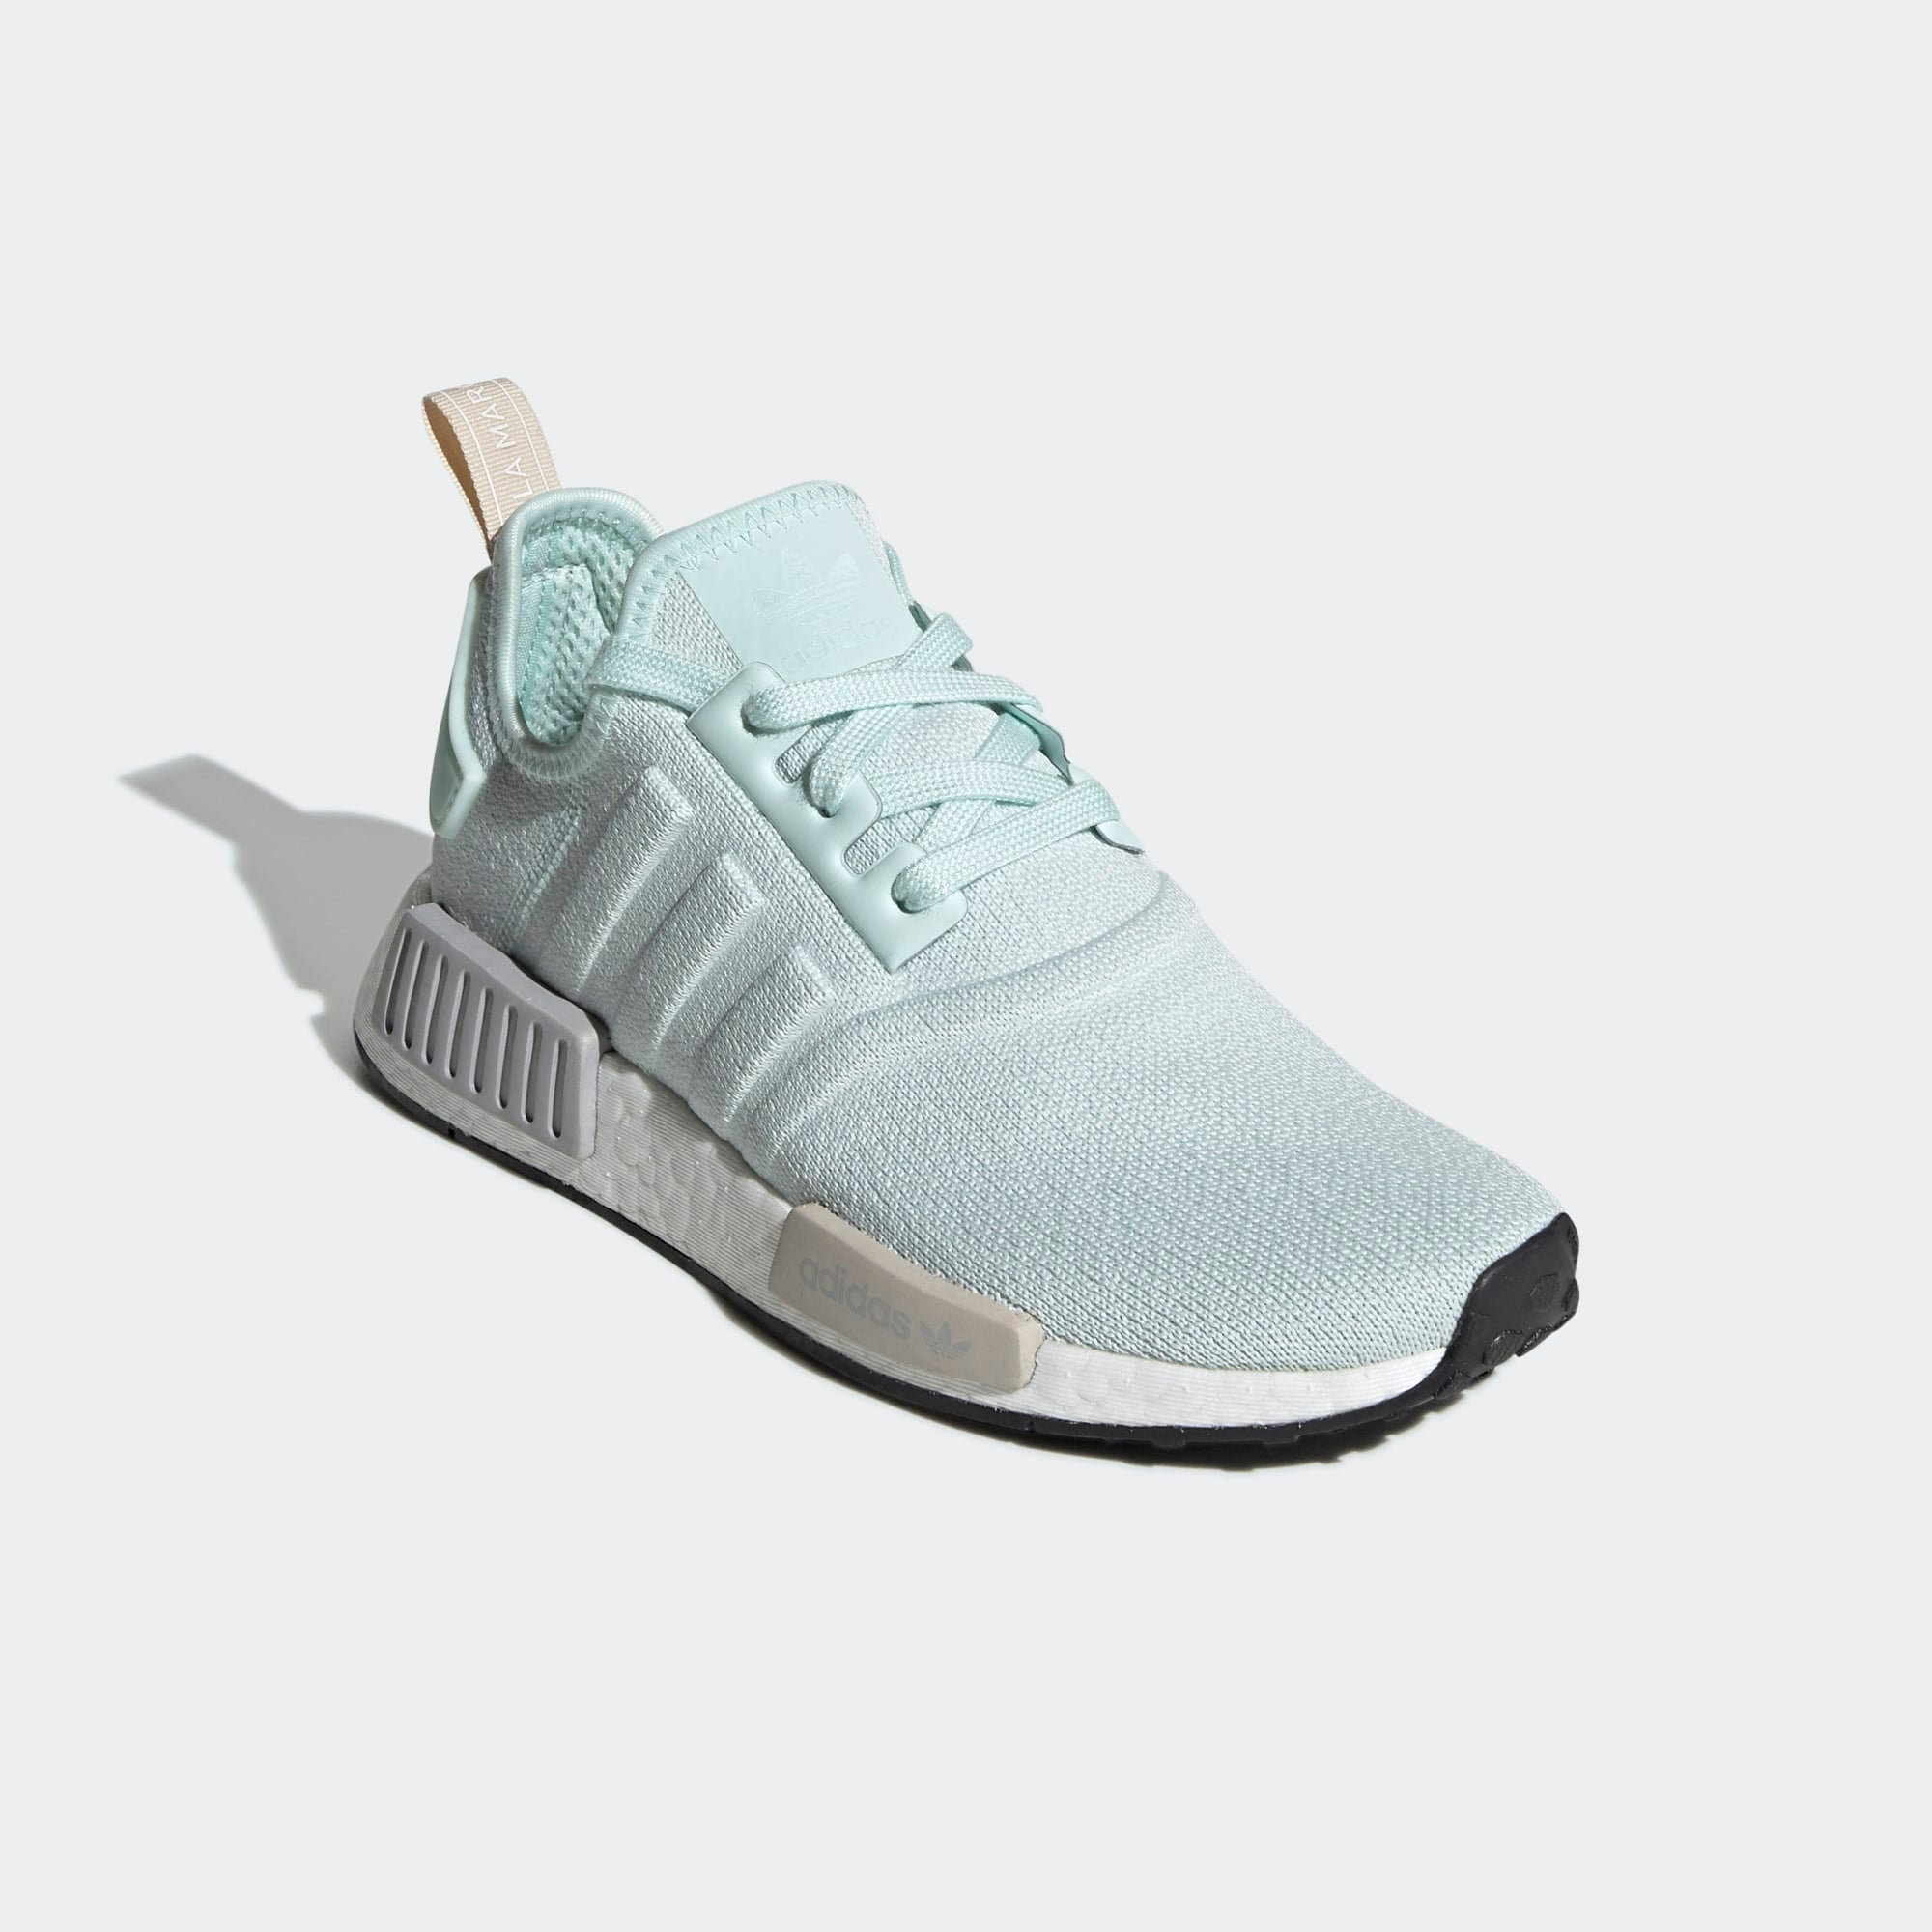 adidas NMD_R1 Shoes Ice Mint EE5181 Chicago City Sports  Chicago City Sports